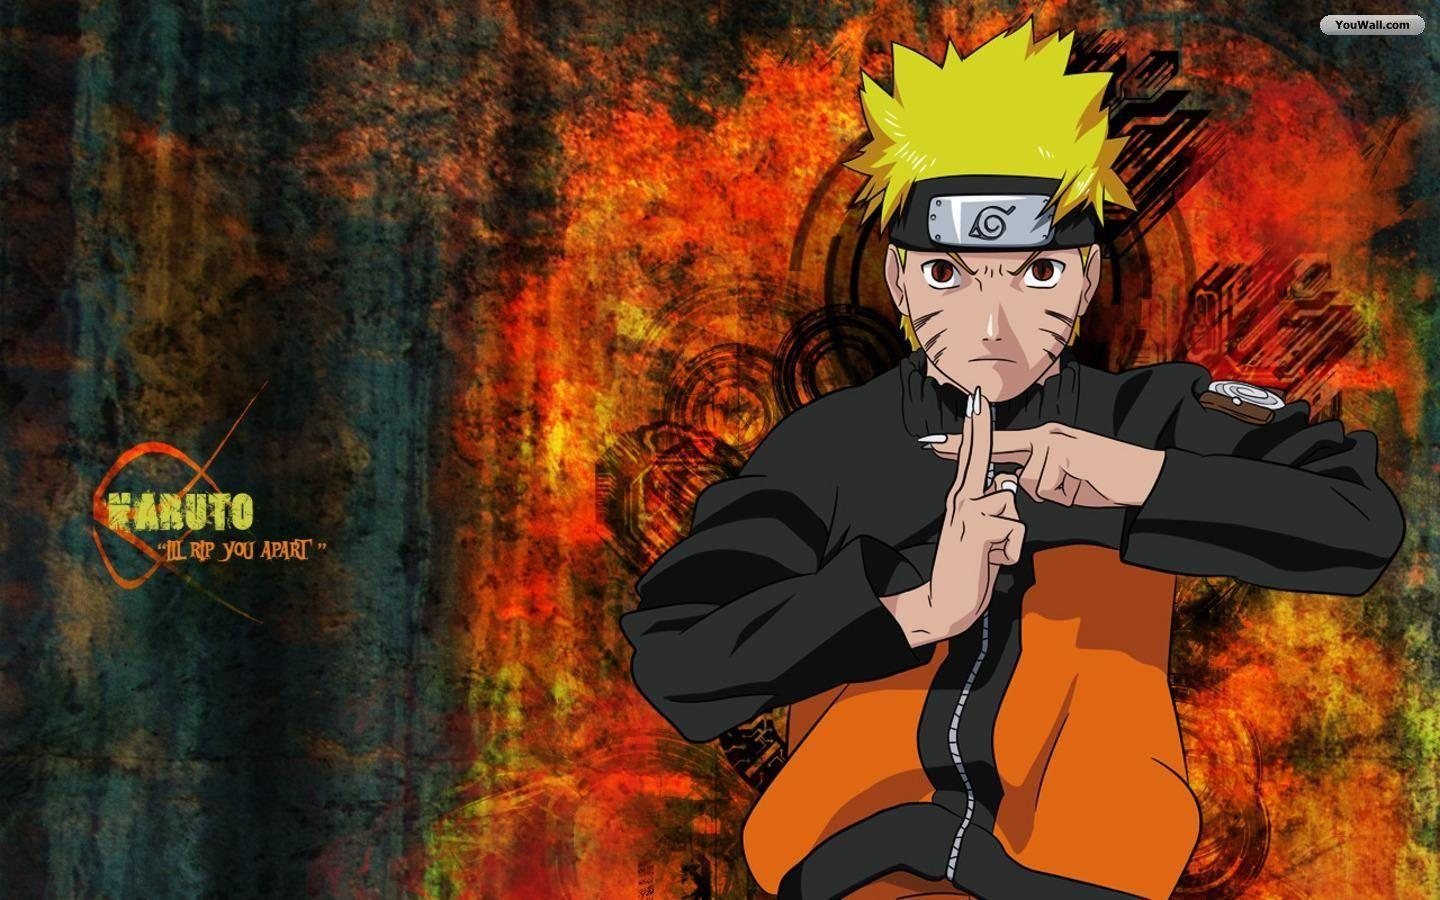 wallpapers 3d free hd: Naruto Wallpapers 3d